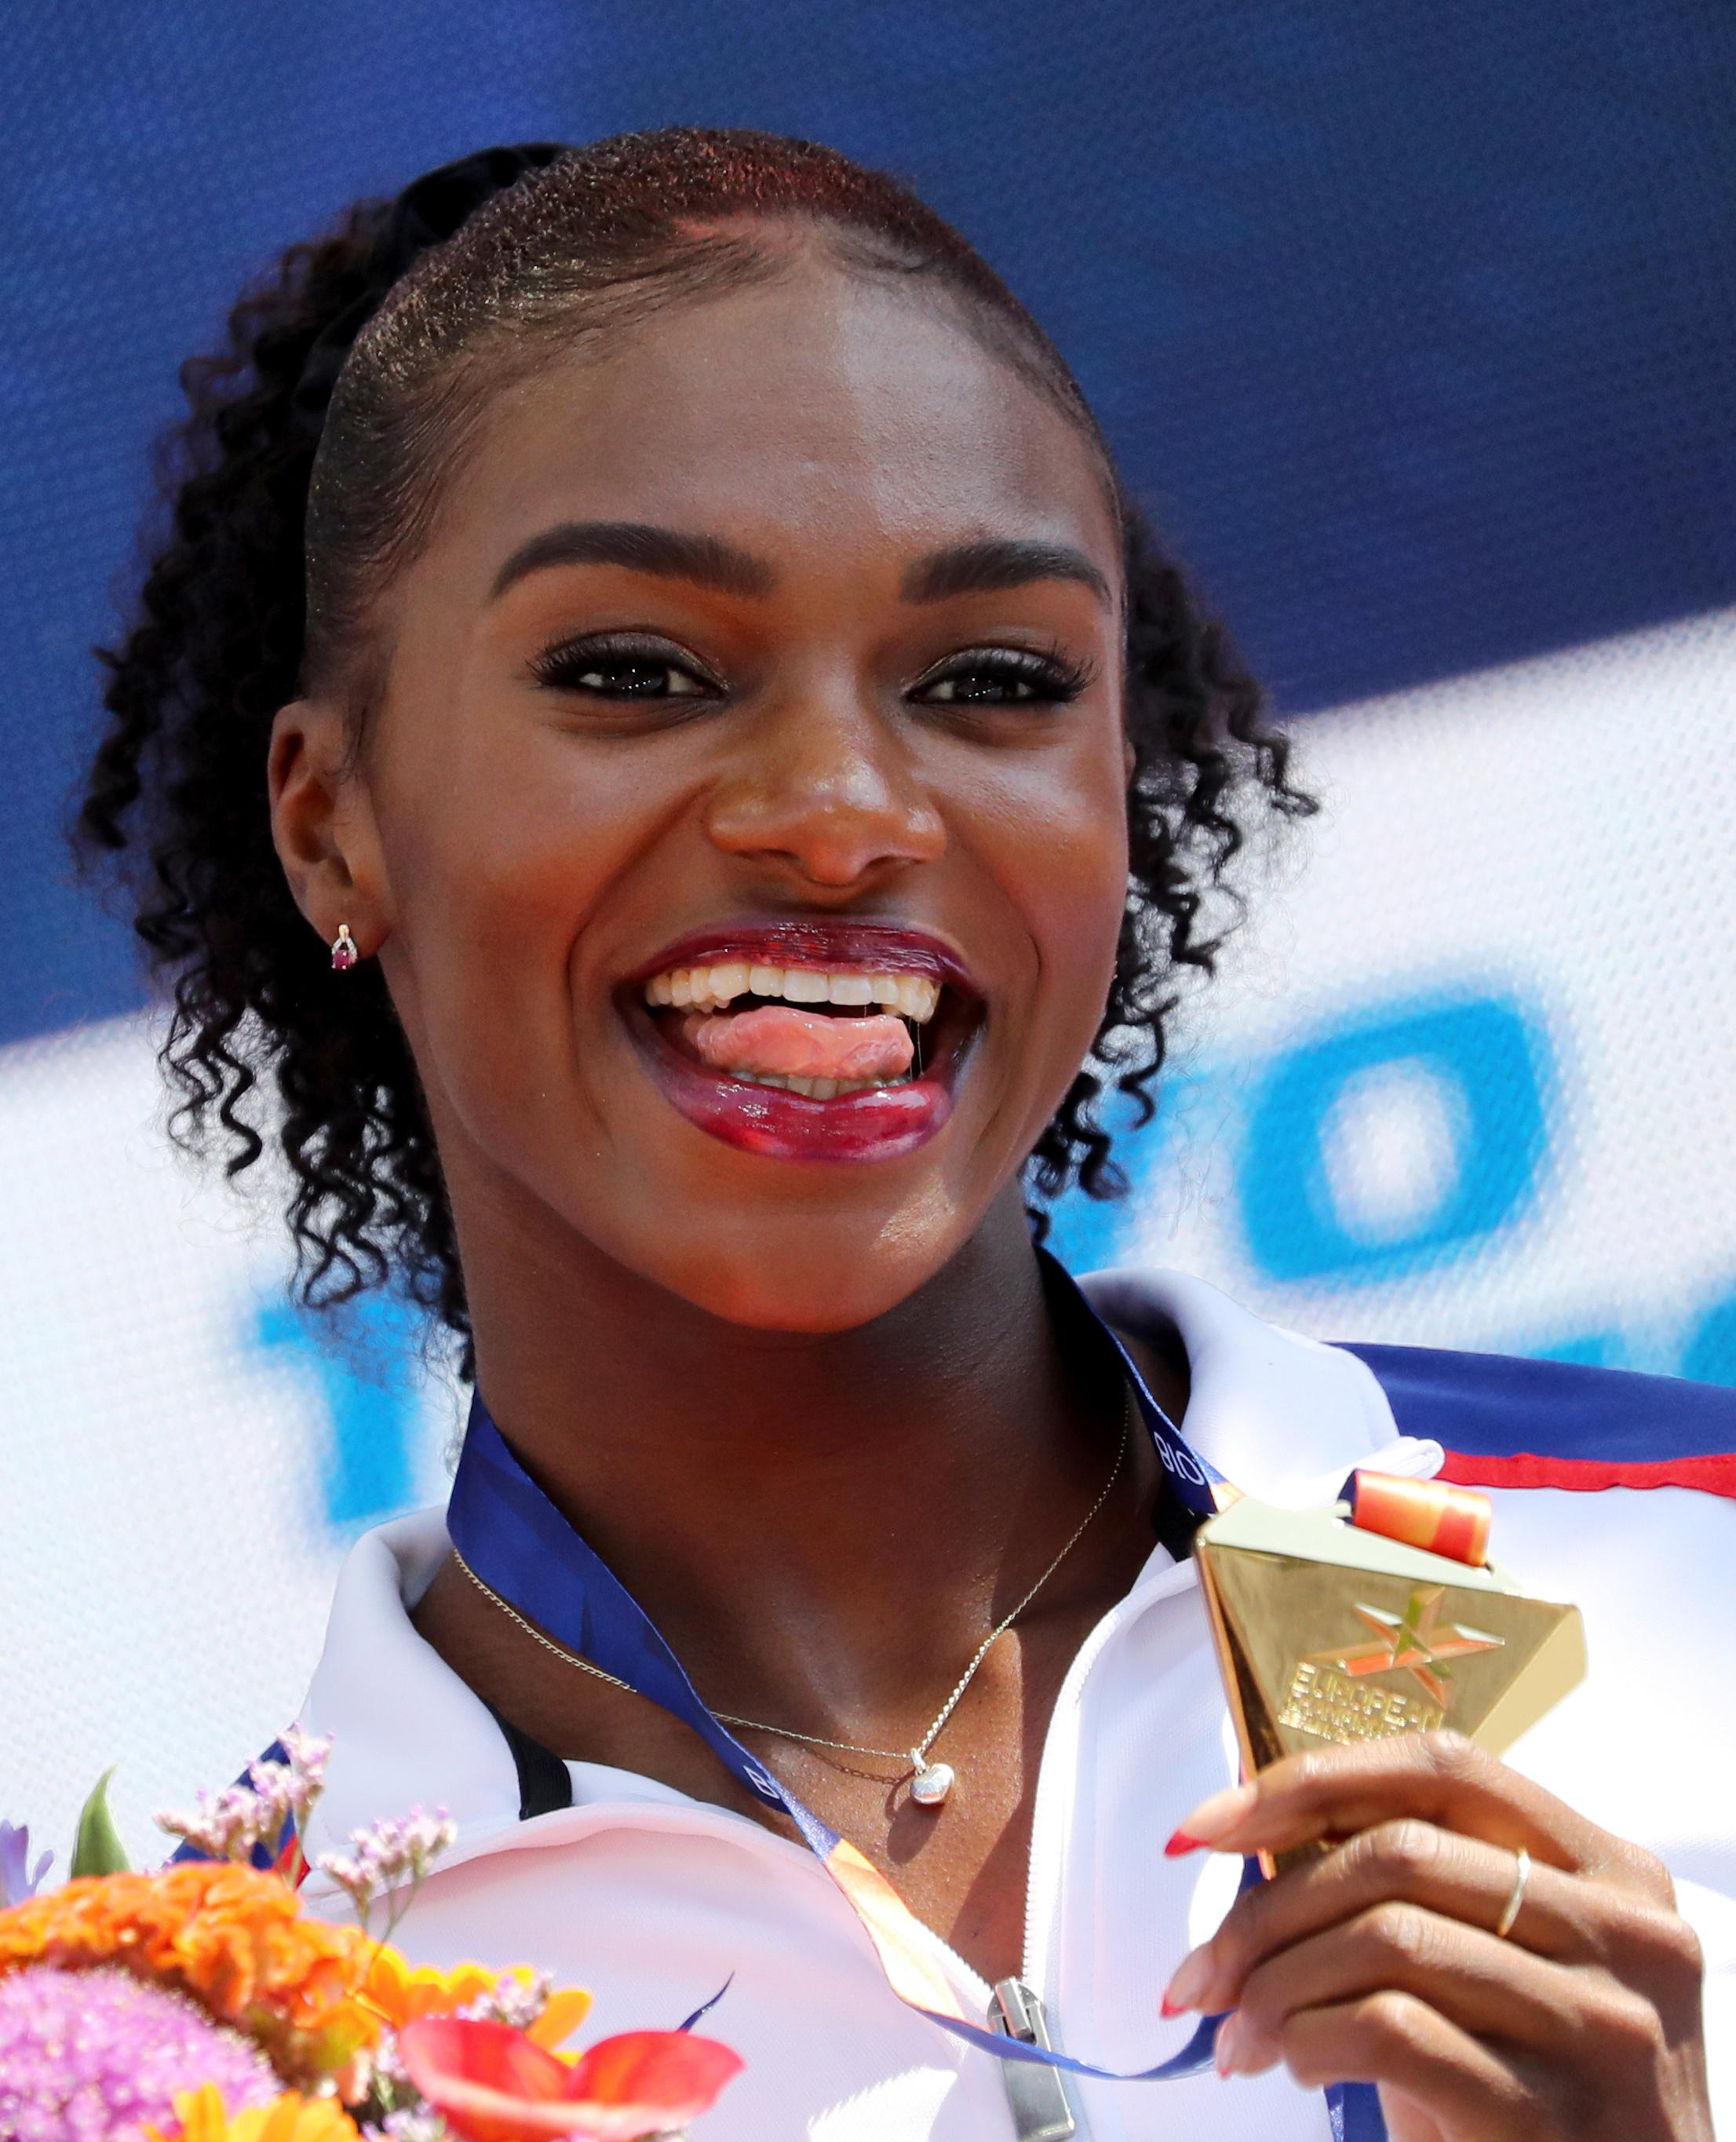 Dina Asher-Smith hit her hat-trick on Sunday